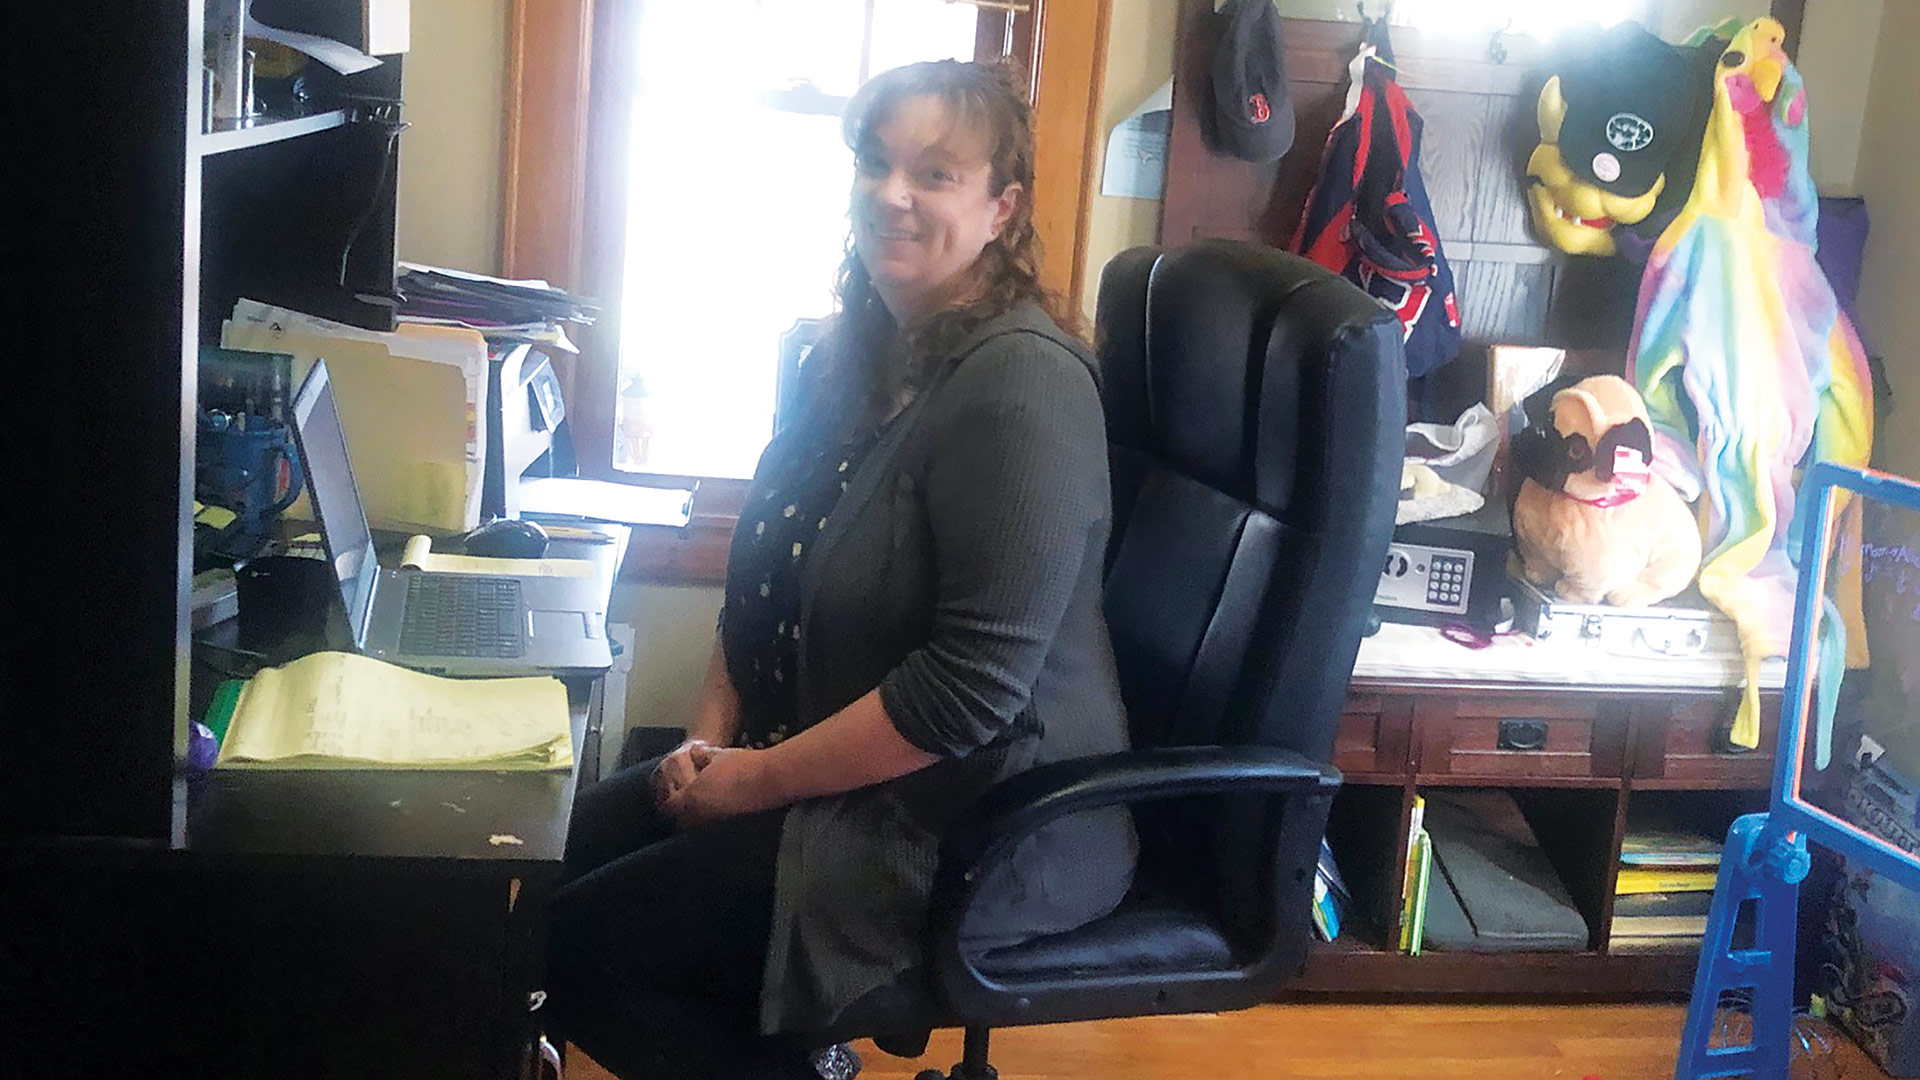 Allison Lapierre-Houle to balance working at home